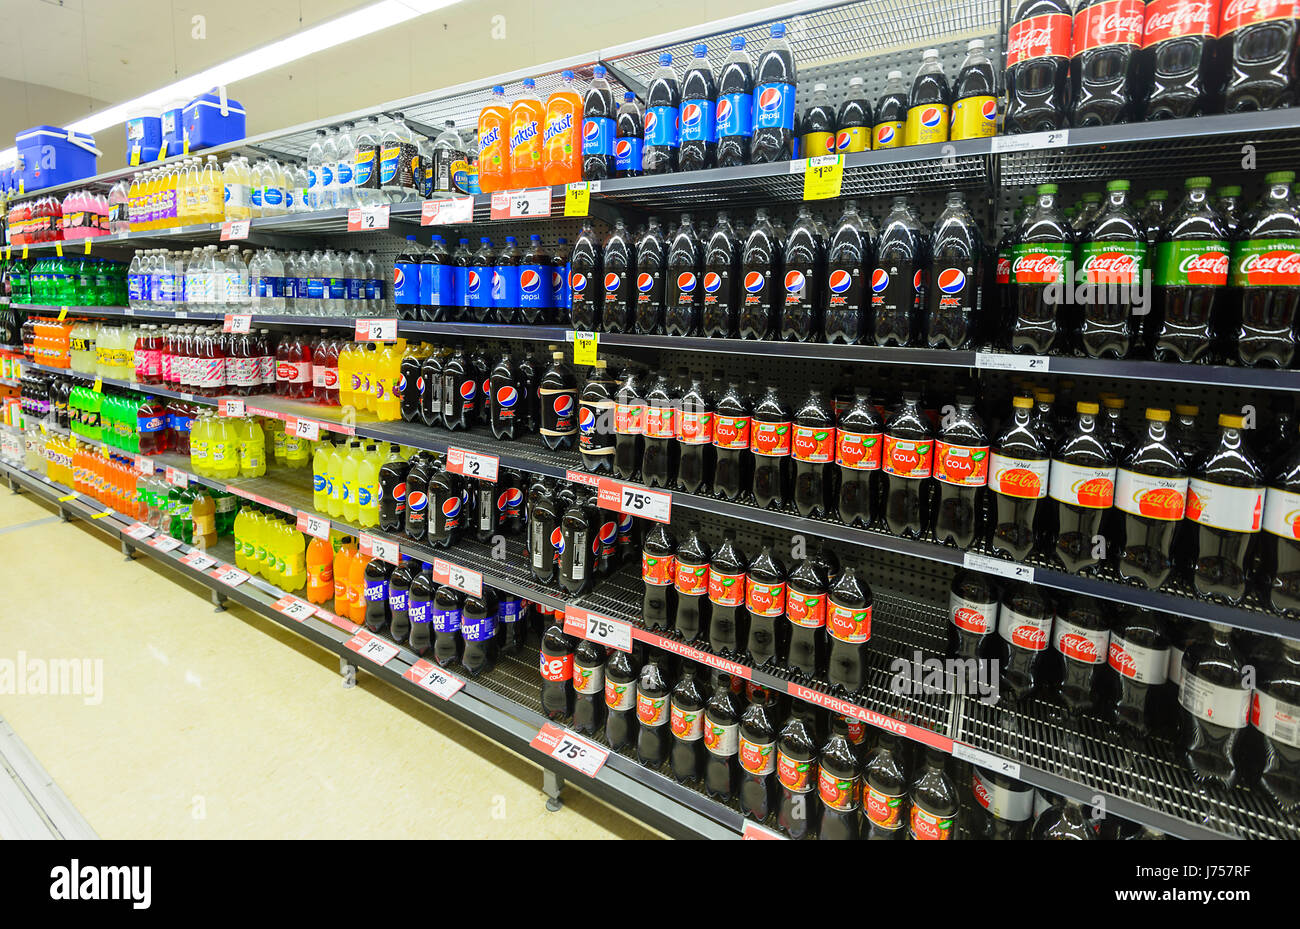 Shelves stacked up with Soft Drinks at Woolworths, Kiama, New South Wales, NSW, Australia - Stock Image